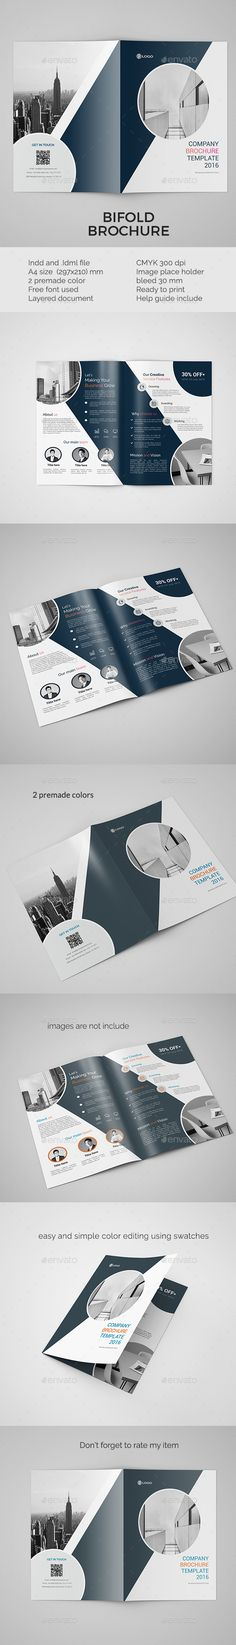 Corporate Bifold Brochure Template InDesign INDD. Download here: http://graphicriver.net/item/corporate-bifold-brochure-vol-2/16690442?ref=ksioks